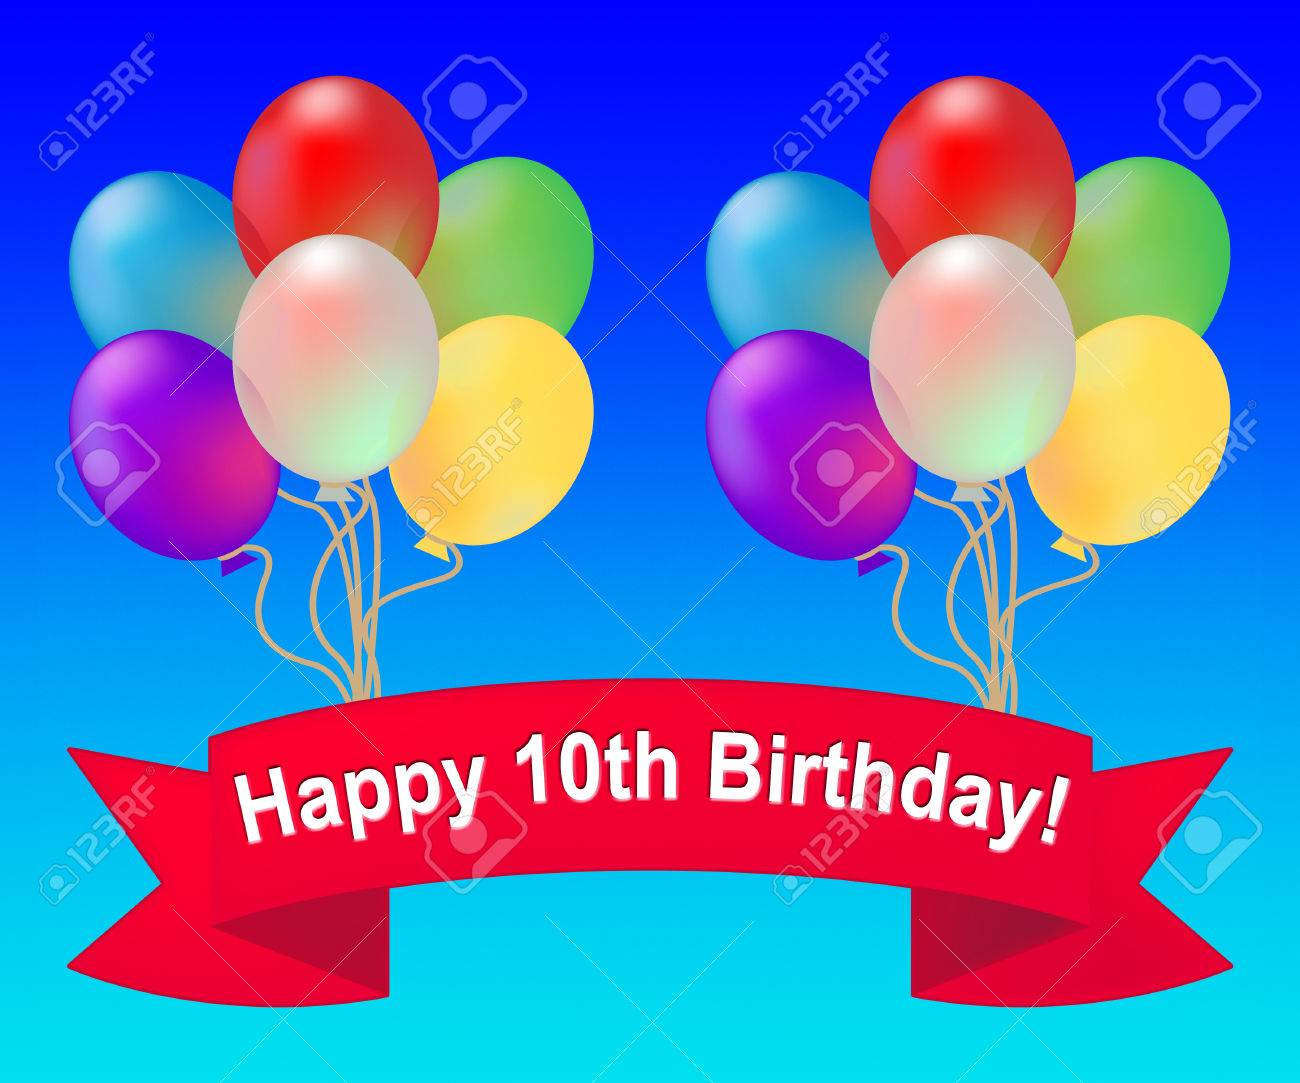 Happy Tenth Birthday Balloons Meaning 10th Party Celebration 3d Illustration Stock